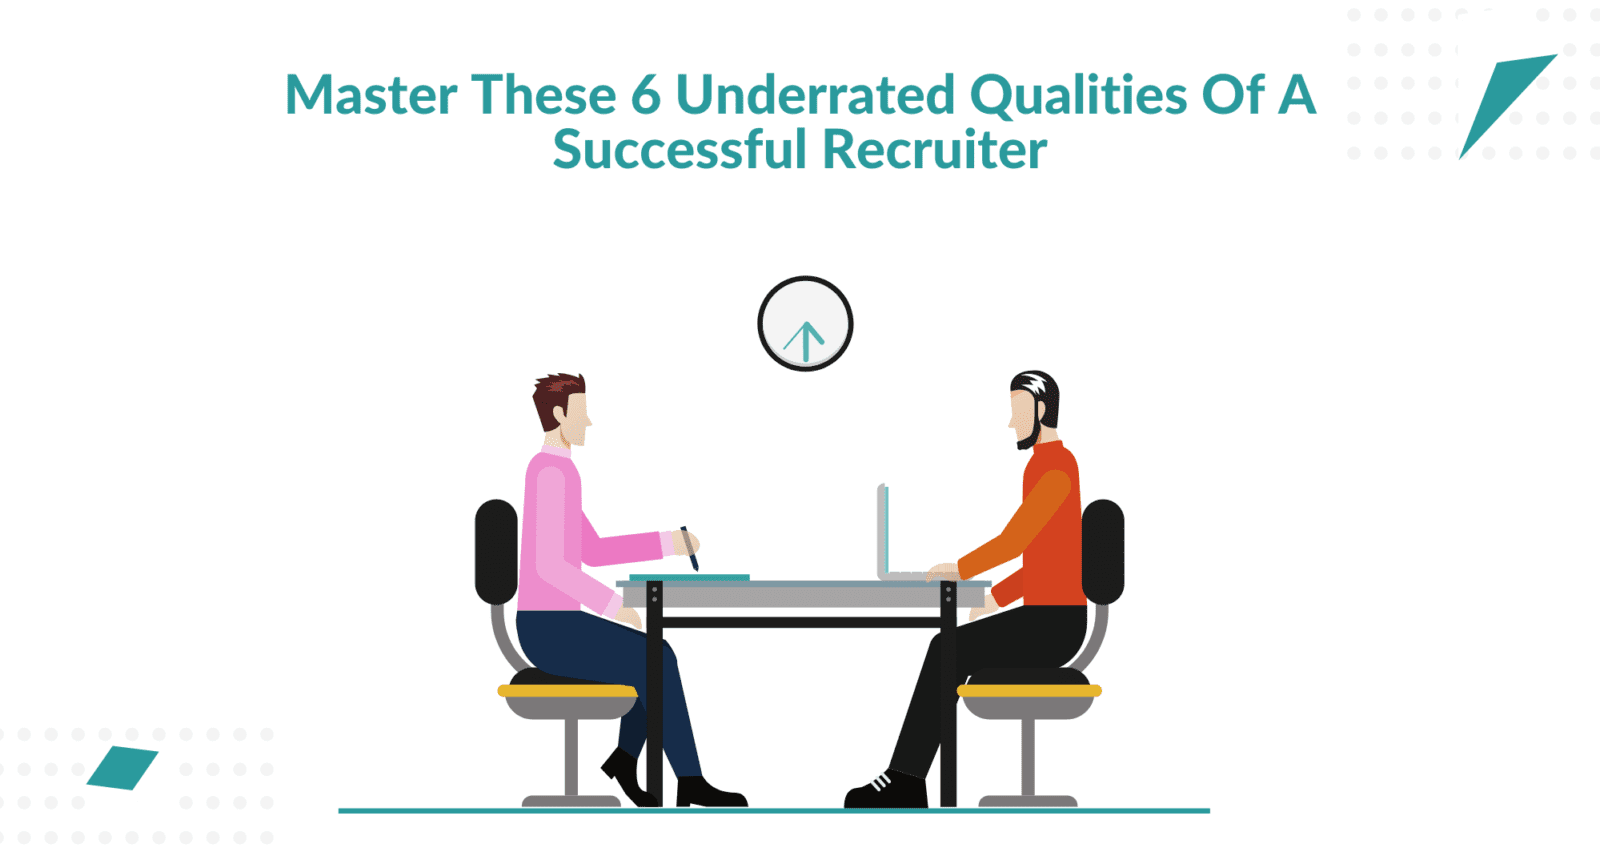 master these 6 characteritics of a great recruiter. Top characteritics of a great recuiter. 6 underrated characteristics of a good recruiter. Characteristics of a great recruiter. essential qualities of a great recruiter.